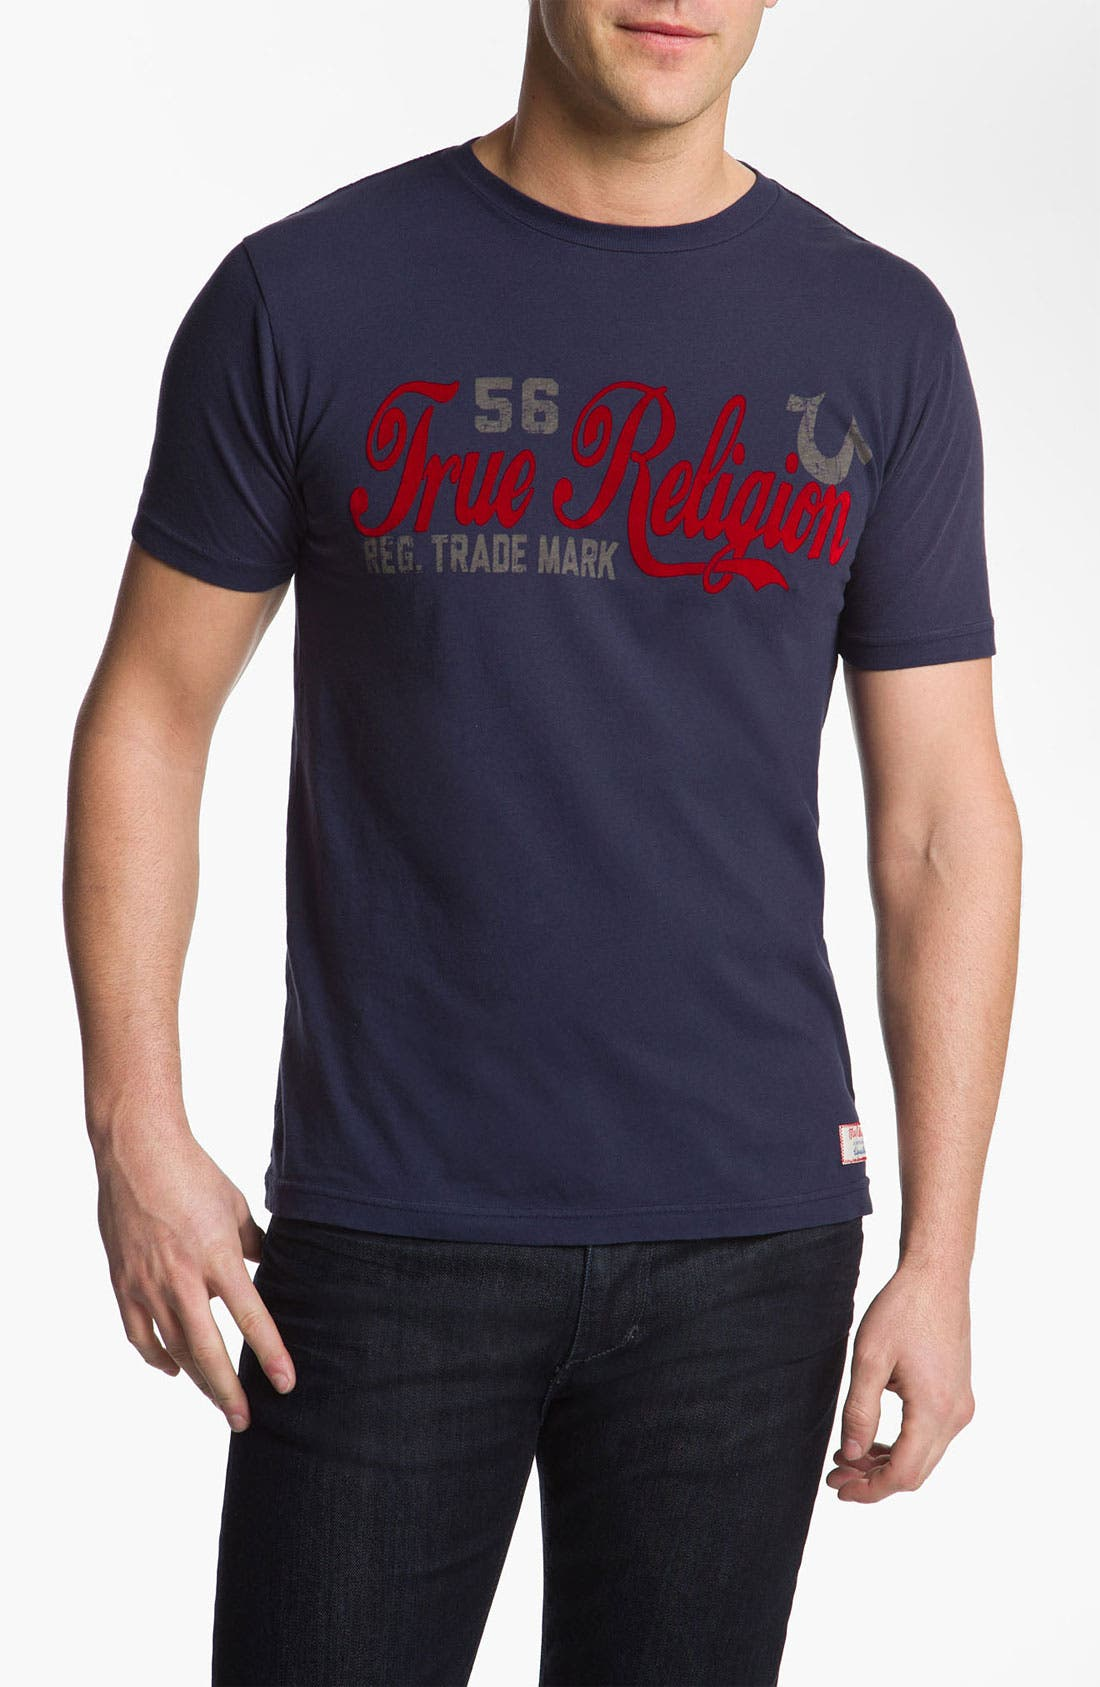 Alternate Image 1 Selected - True Religion Brand Jeans 'Soda Pop' T-Shirt